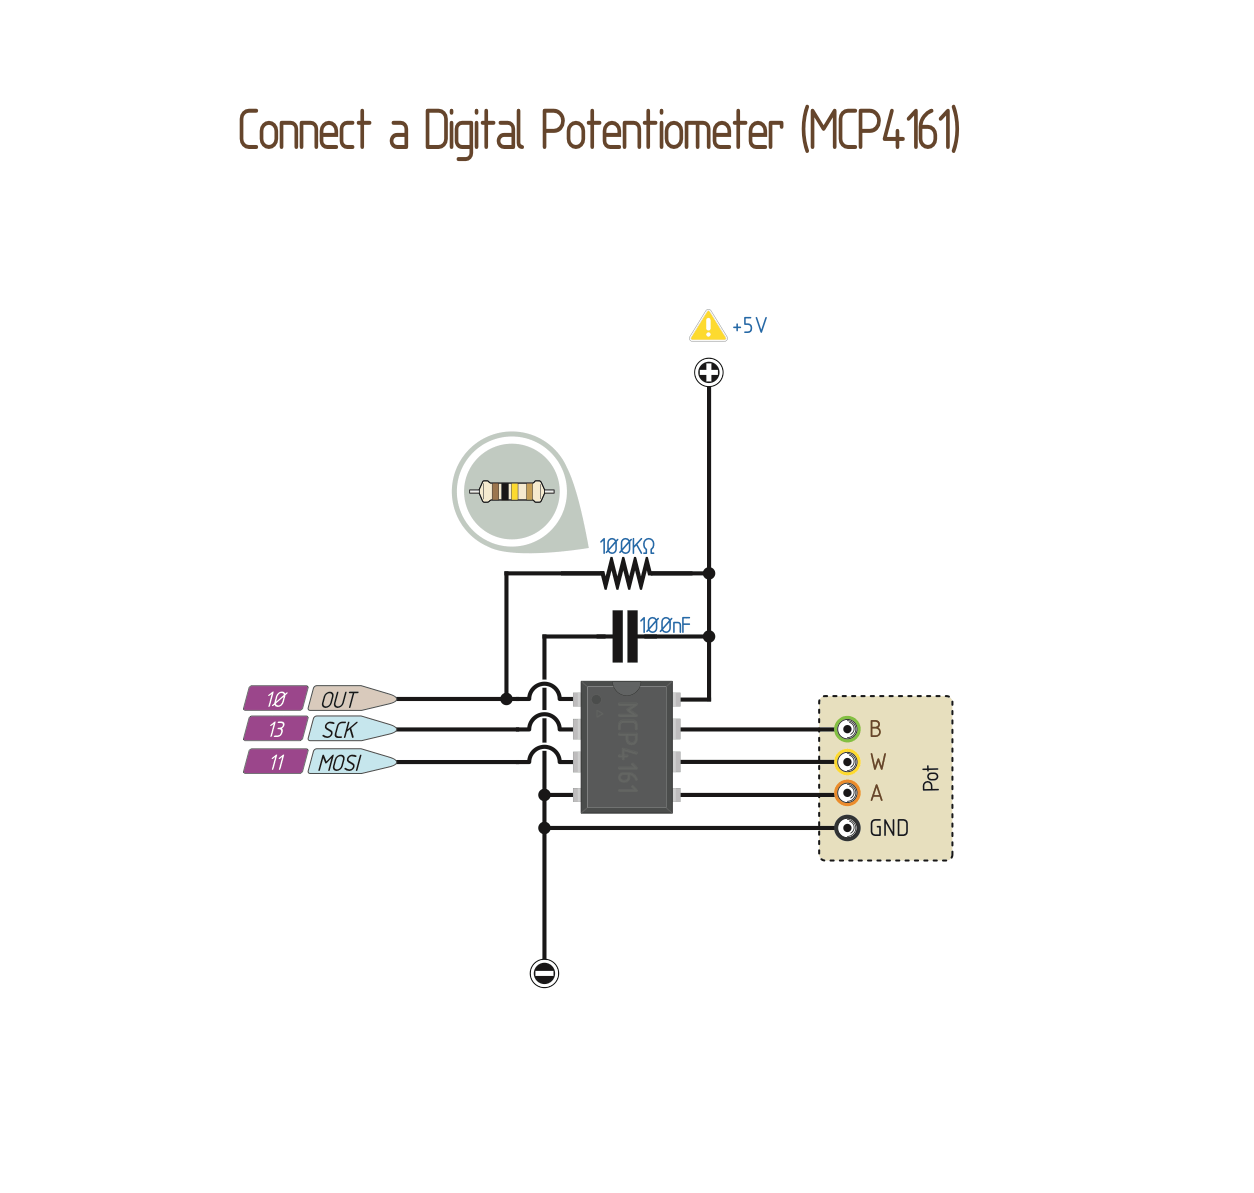 Wiring A Digital Potentiometer With Mcp